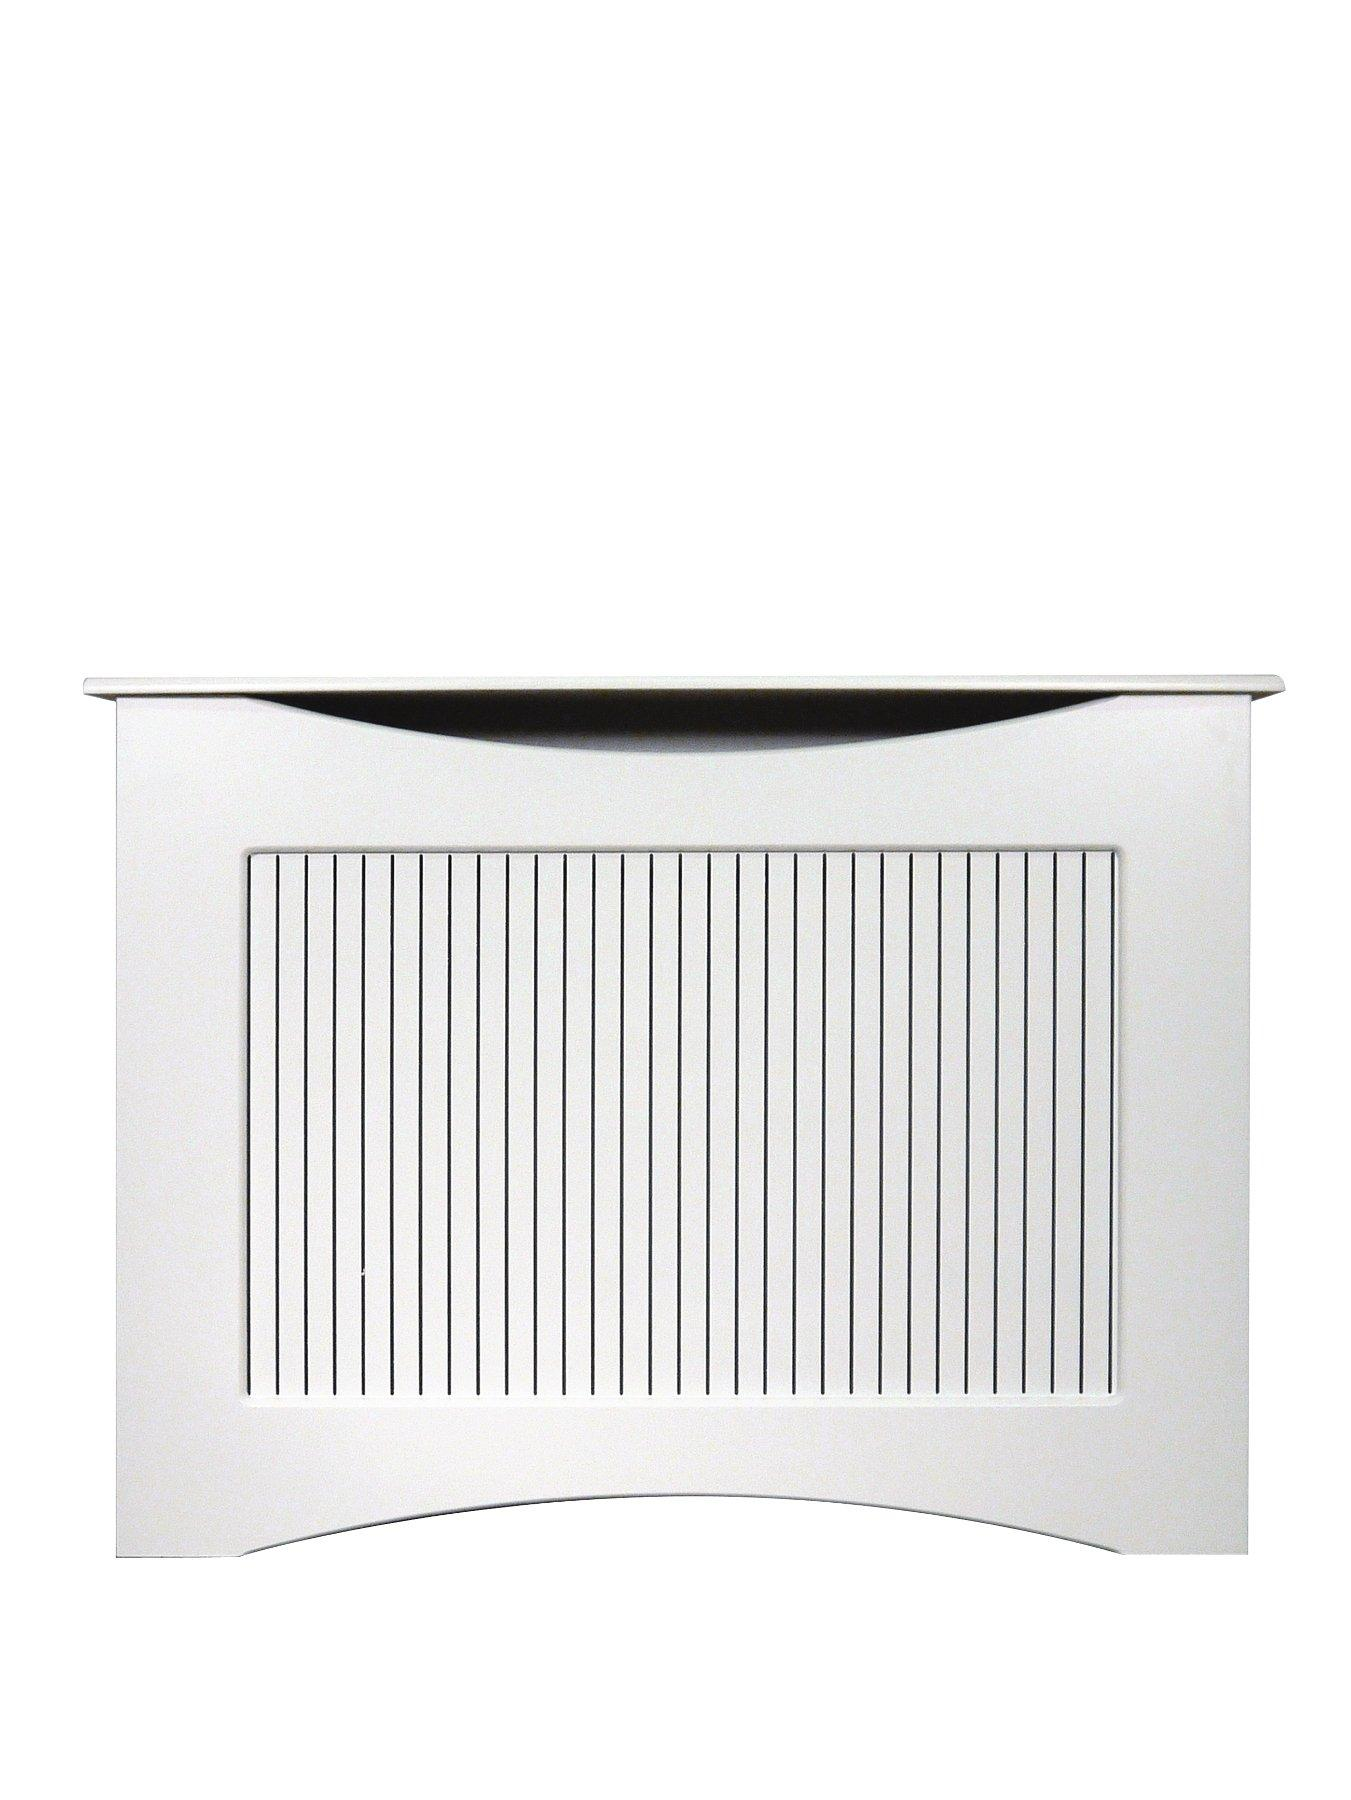 Compare prices for Adam Fire Surrounds 120Cm White Satin Radiator Cover